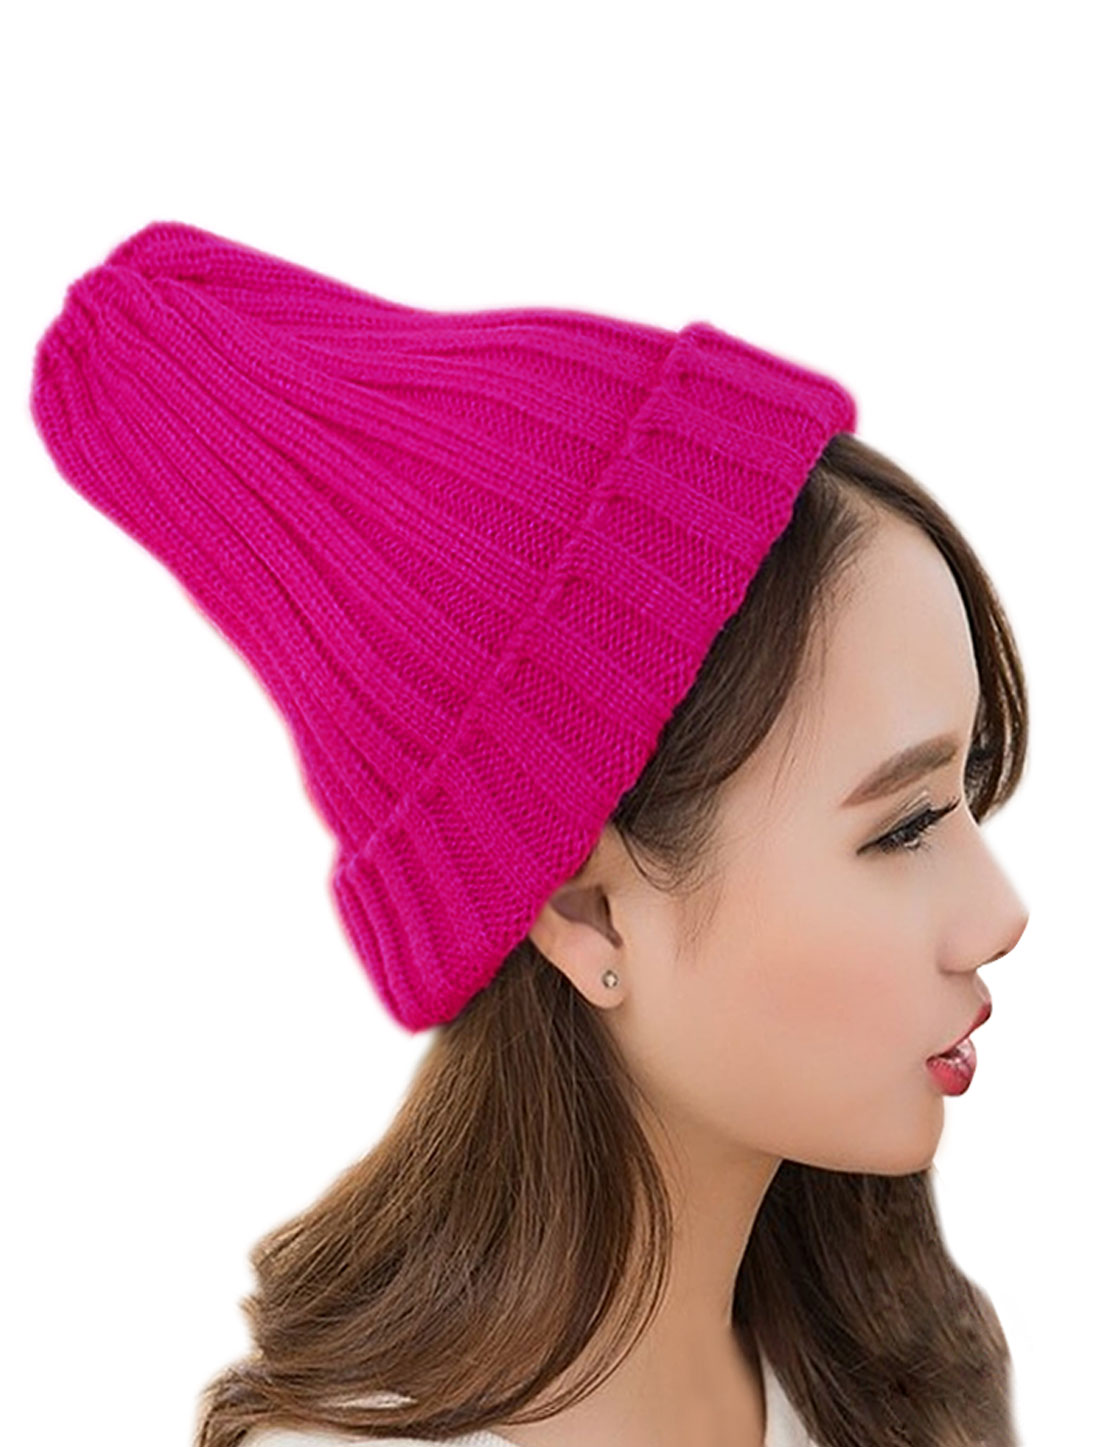 Unisex Knitted Elastic Ribbed Chunky Slouchy Cuffed Beanie Hat Pink